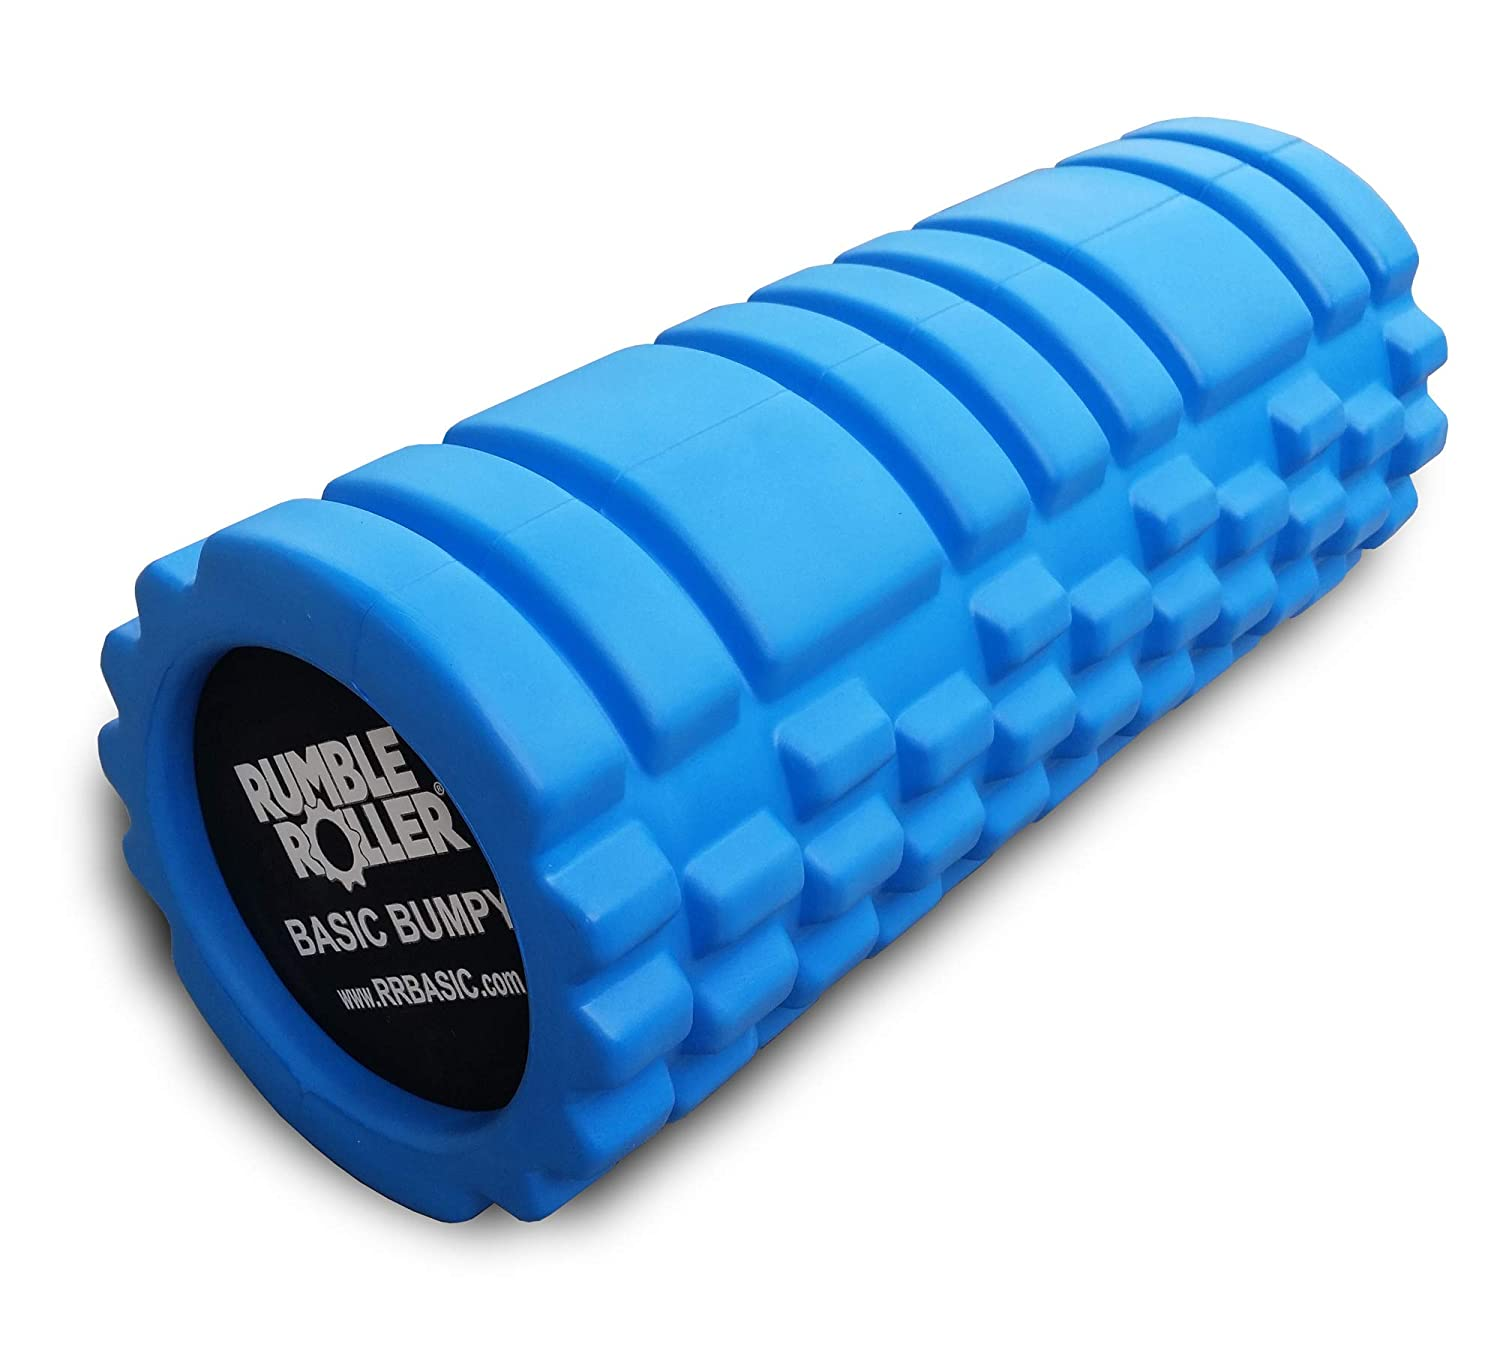 RumbleRoller Basic Bumpy Foam Roller, Solid Core EVA Foam Roller with Grid/Bump Texture for Deep Tissue Massage and Self-Myofascial Release best foam roller